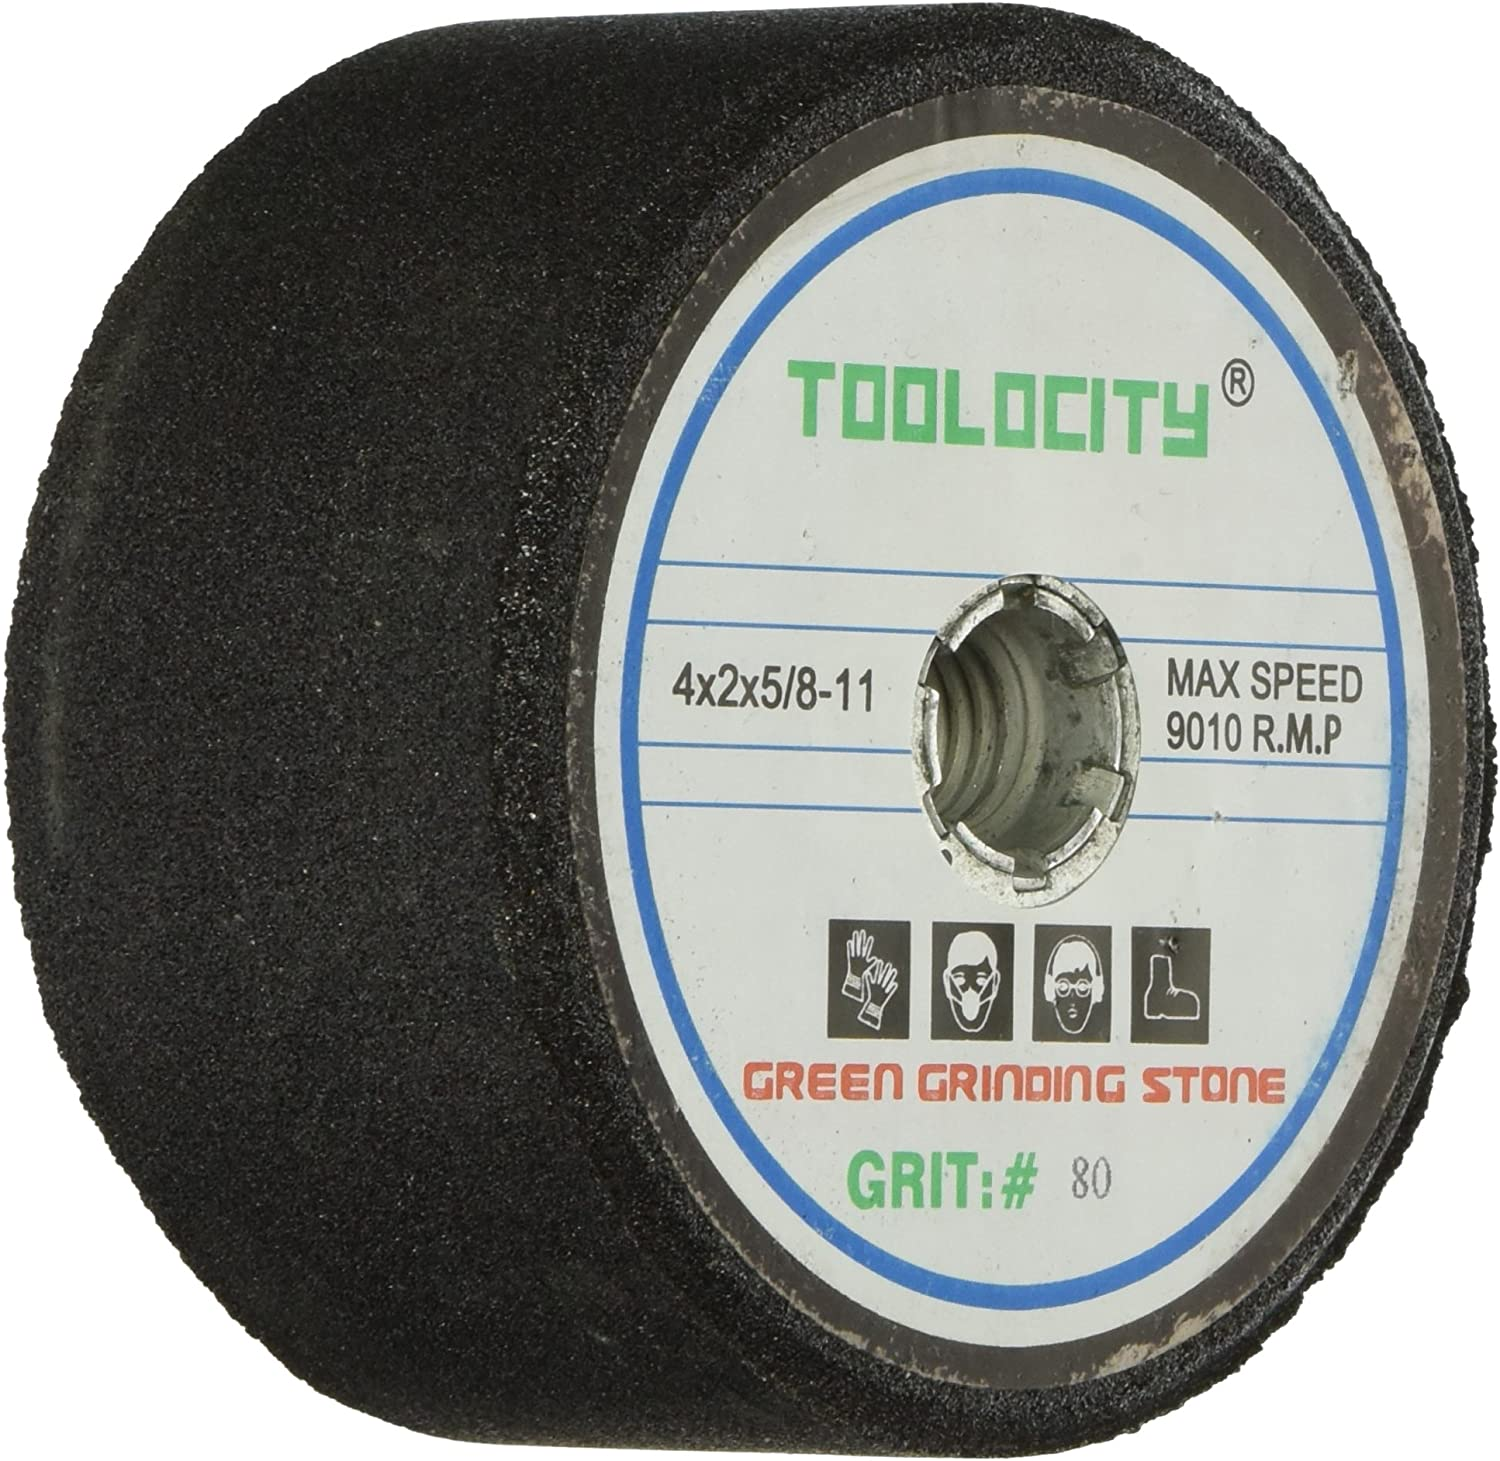 Toolocity GSB0080G 4-Inch Green Grinding Stone 80 Grit with 5/8-11 Thread